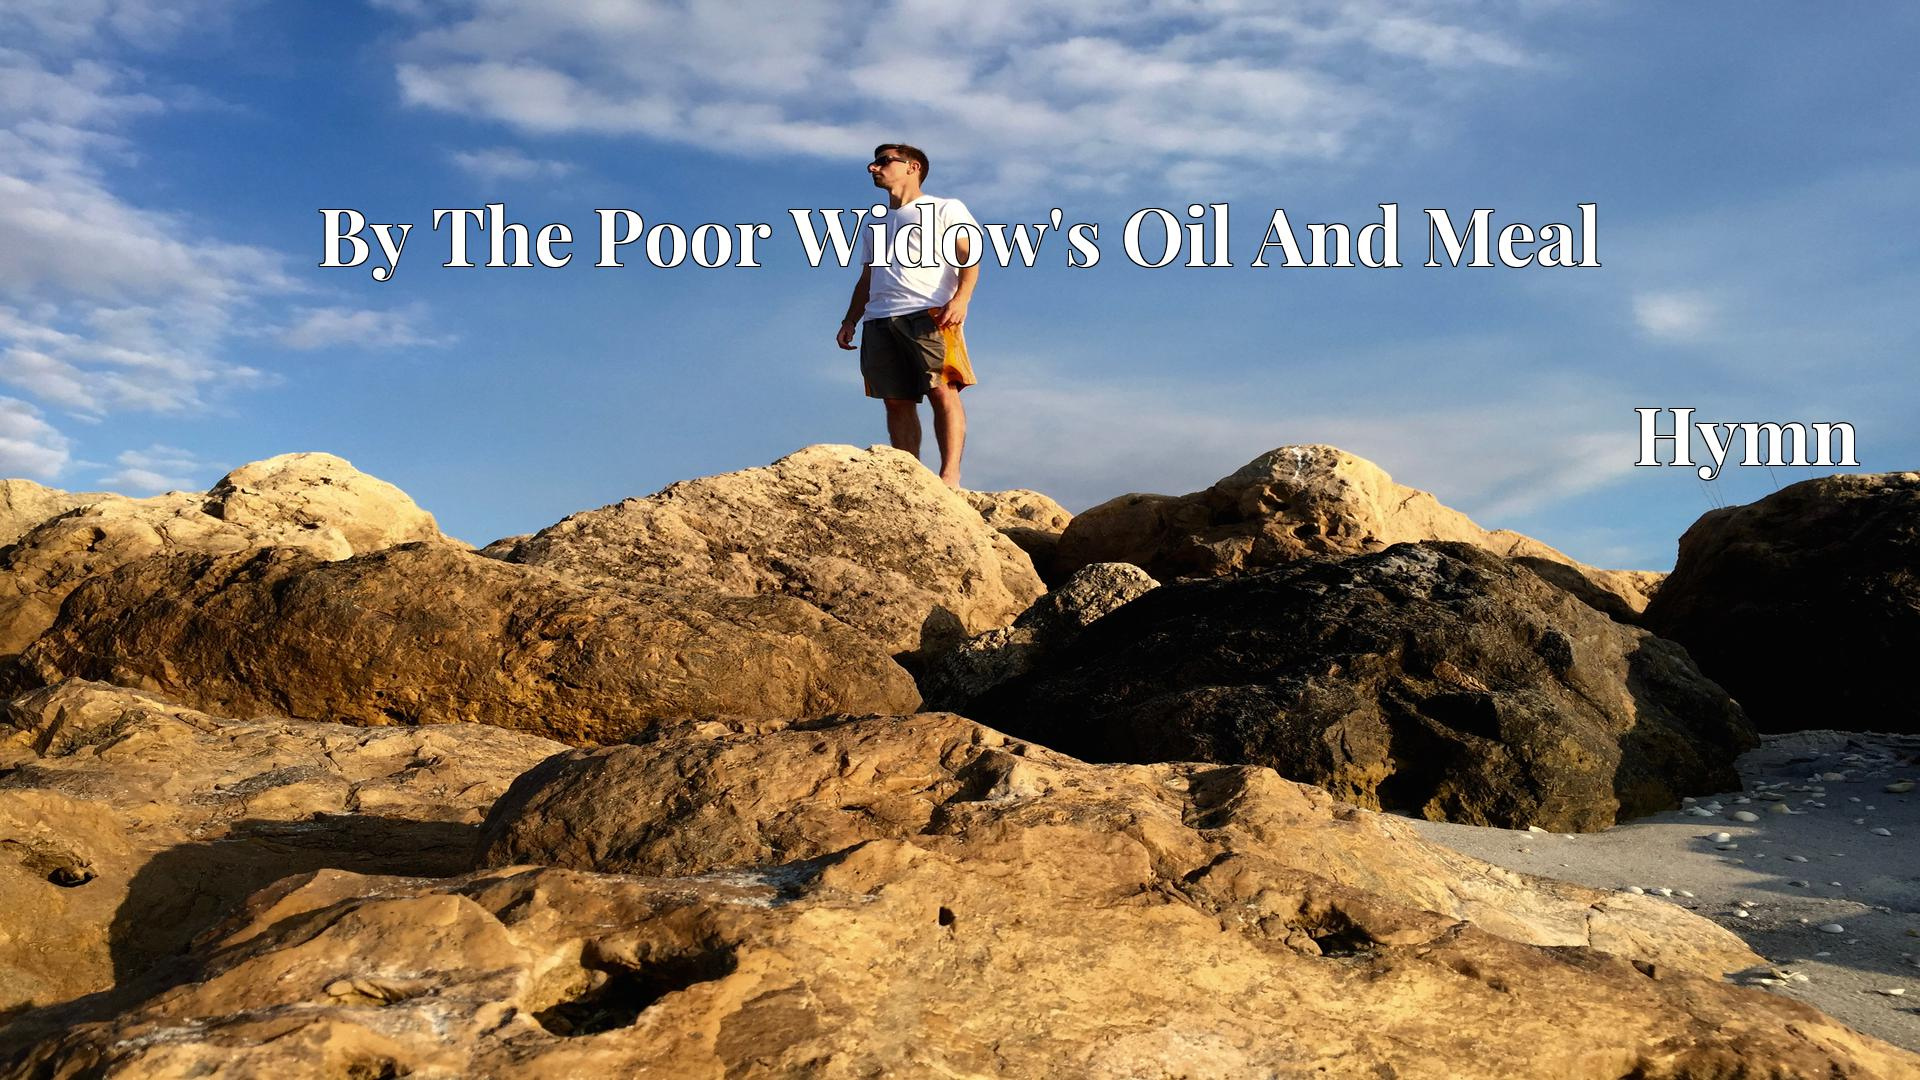 By The Poor Widow's Oil And Meal Hymn